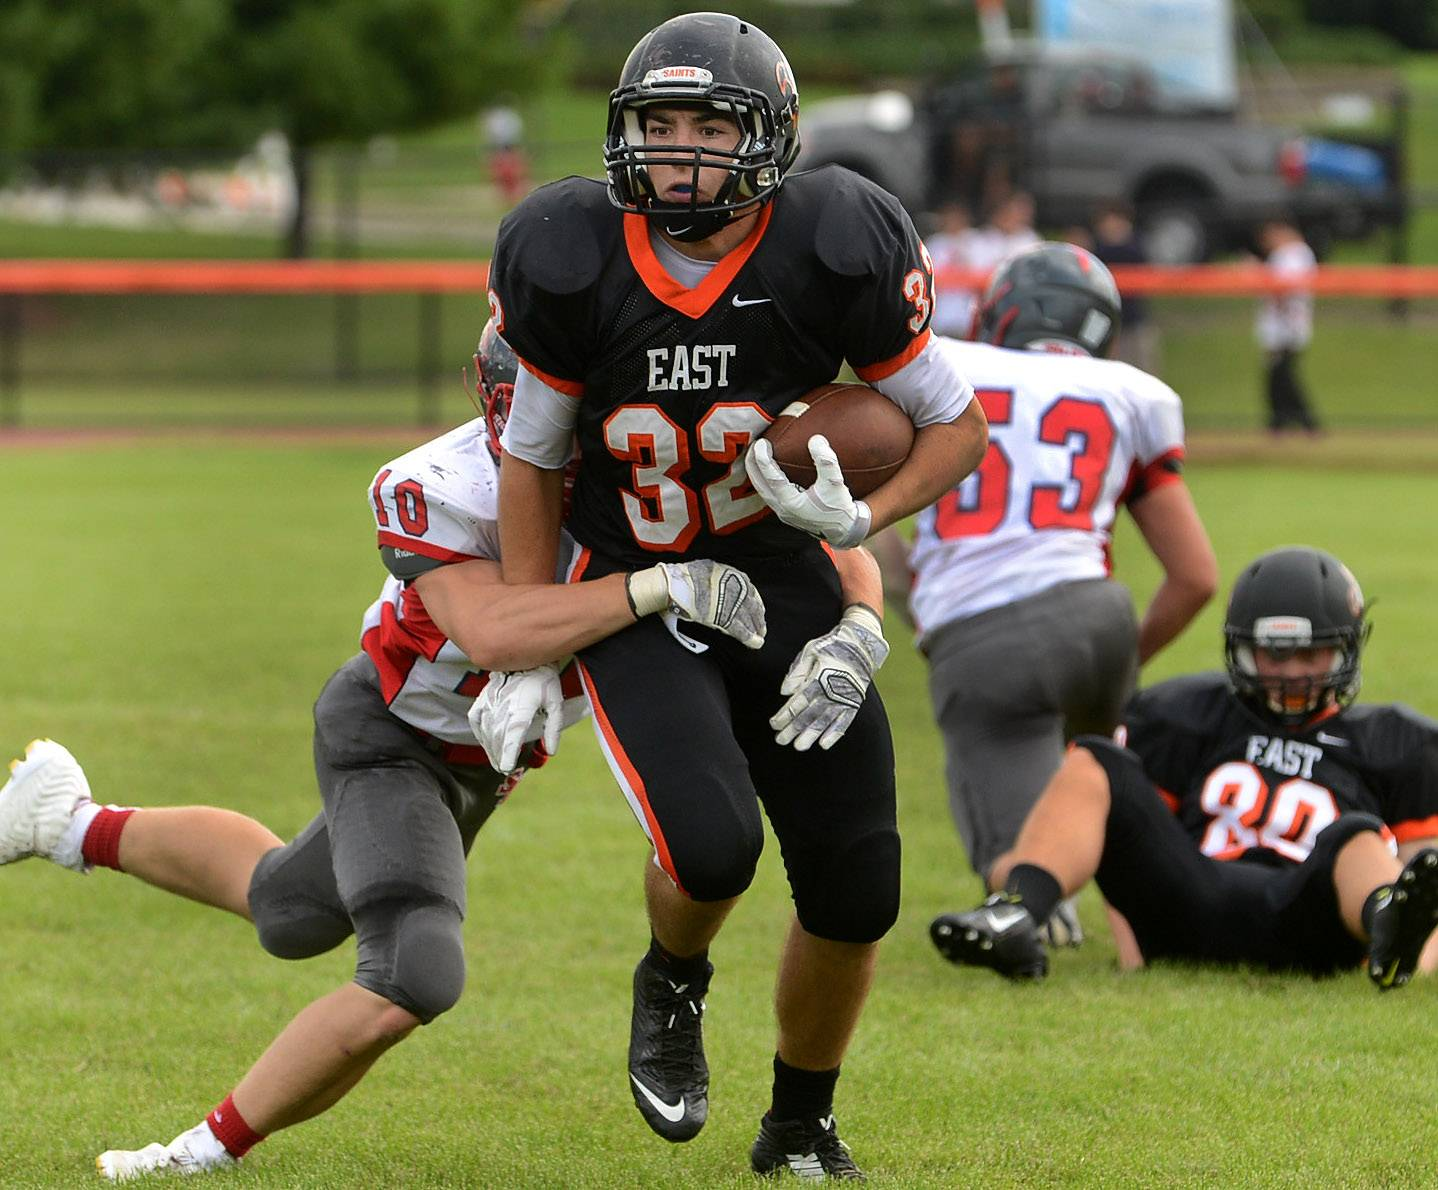 Jake Asquini of St. Charles tries to break into the open after catching a pass in the second quarter of South Elgin at St. Charles East football.